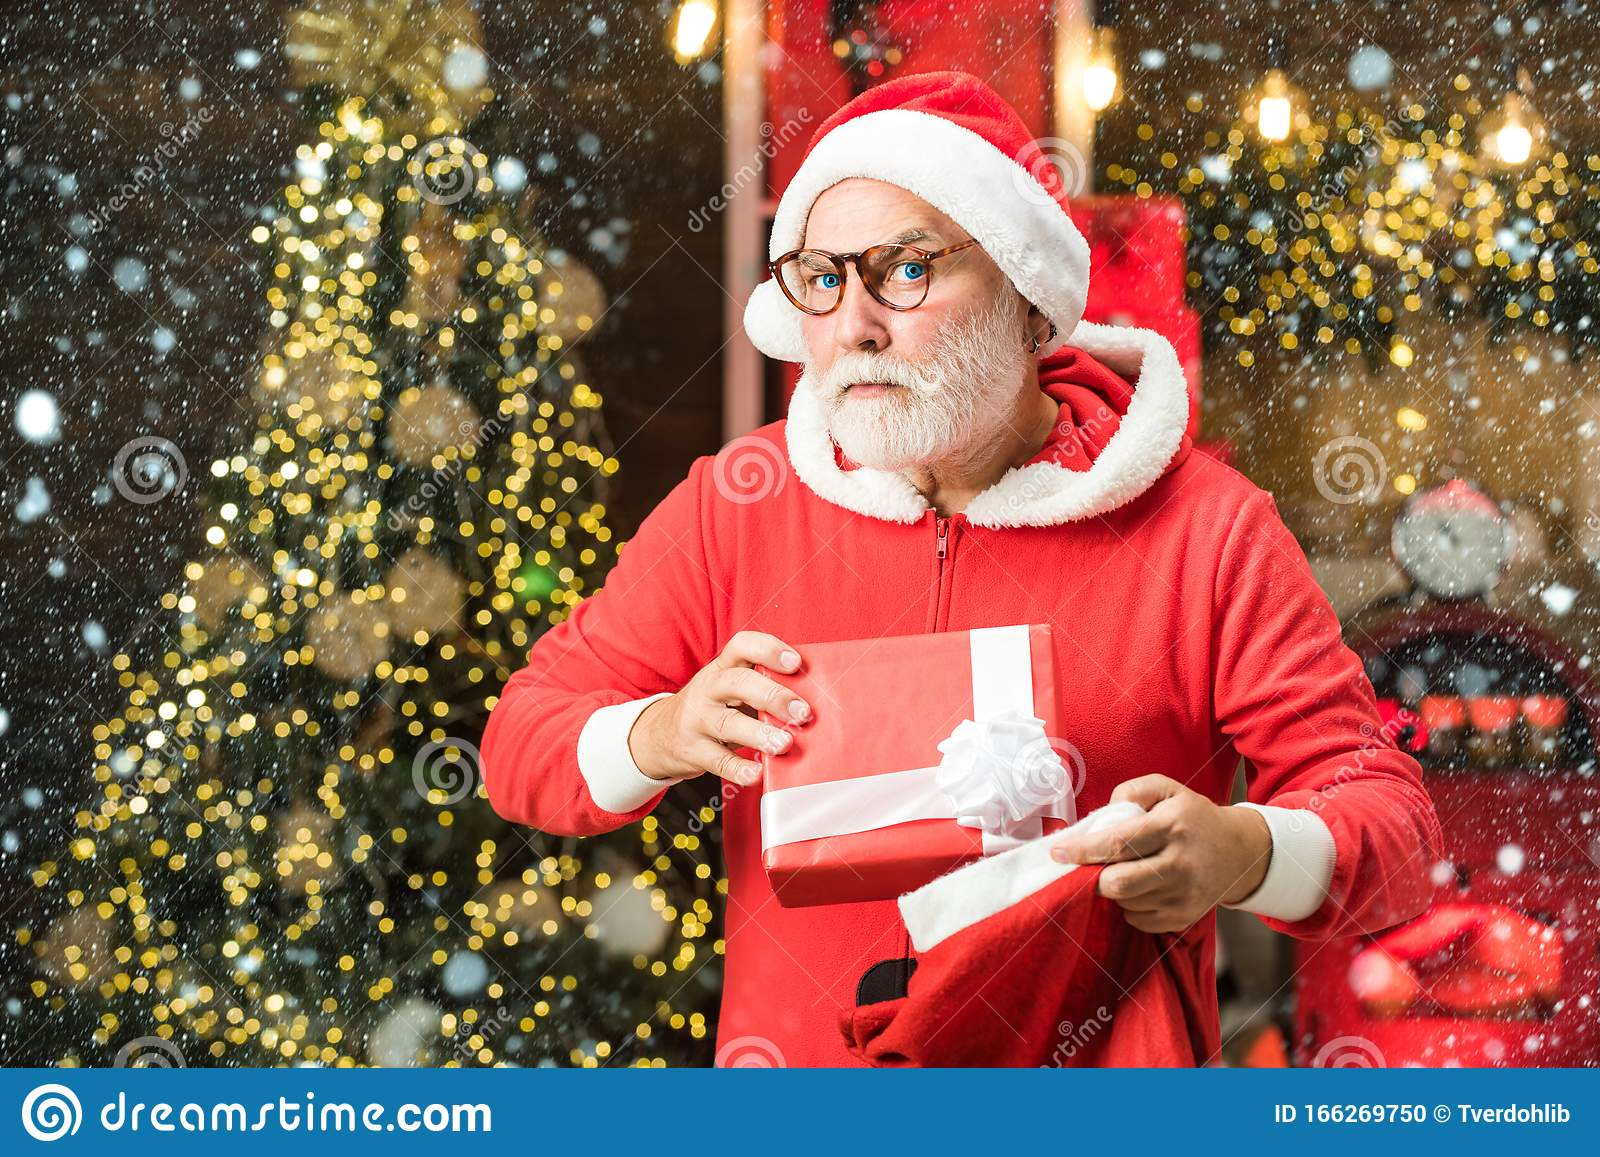 Christmas Man In Snow Funny Santa Hold Christmas Gift Santa Wishes Merry Christmas Santa Grandfather With A White Stock Photo Image Of Beard Expressions 166269750